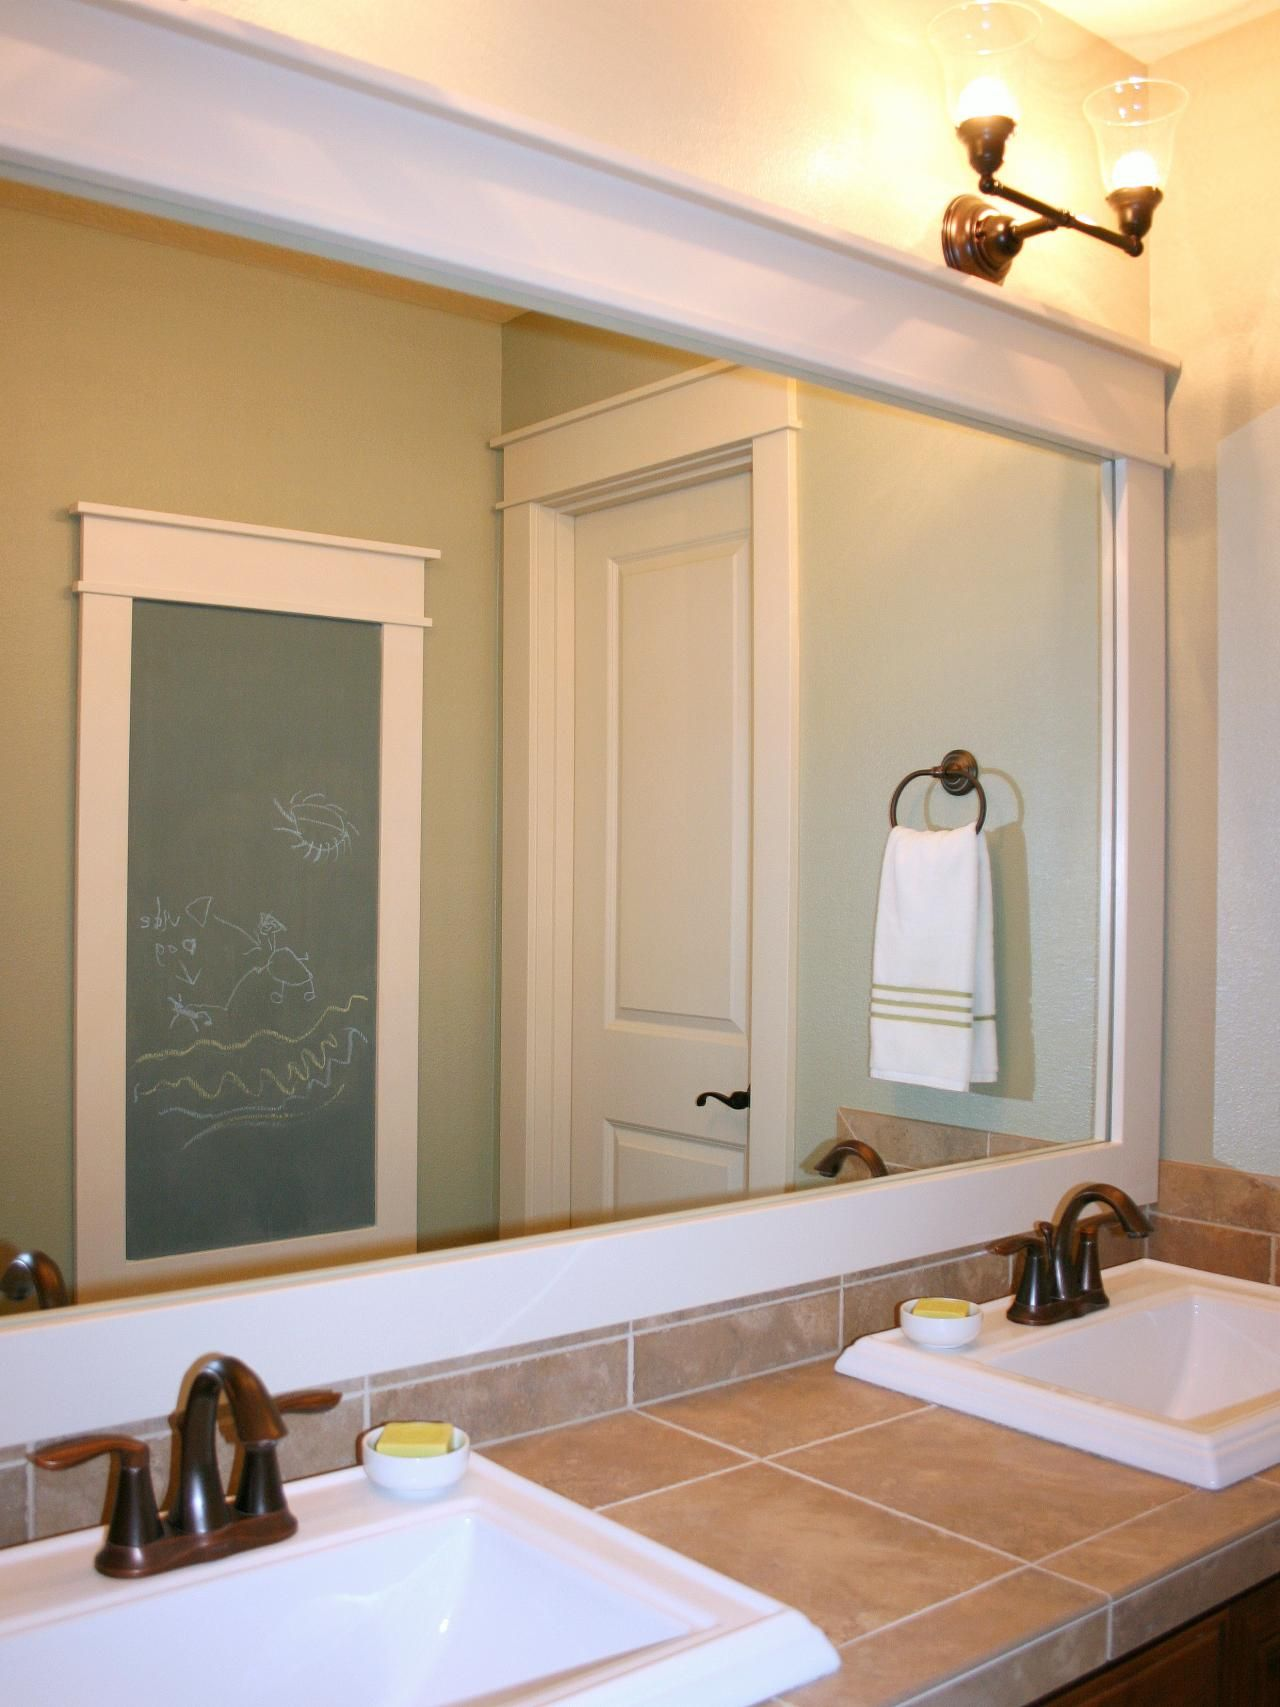 How To Frame A Mirror Decorative Trim Bathroom Mirrors and Hgtv